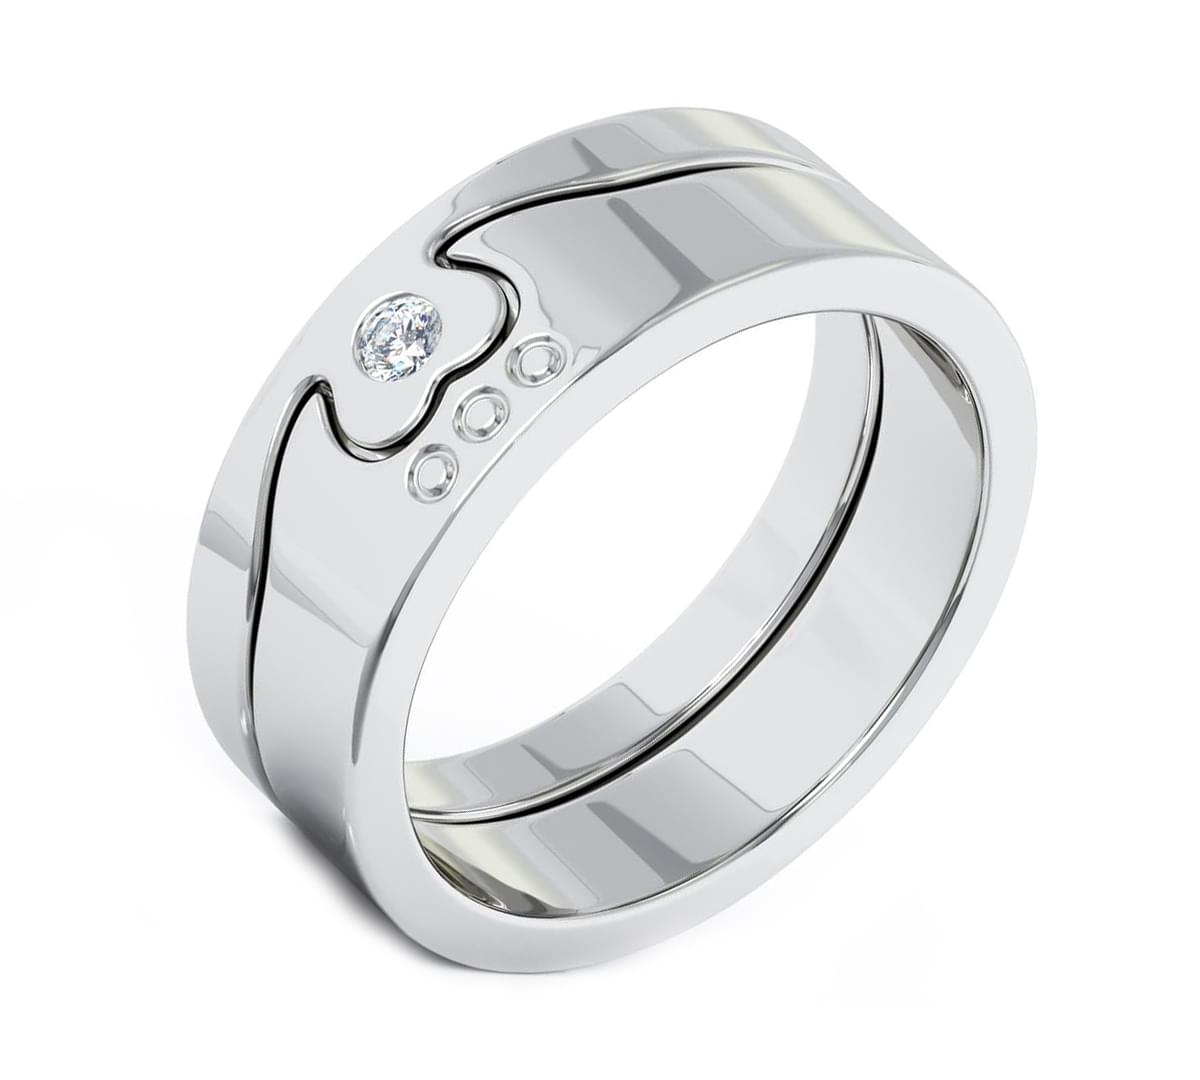 2 Part Claddagh Ring